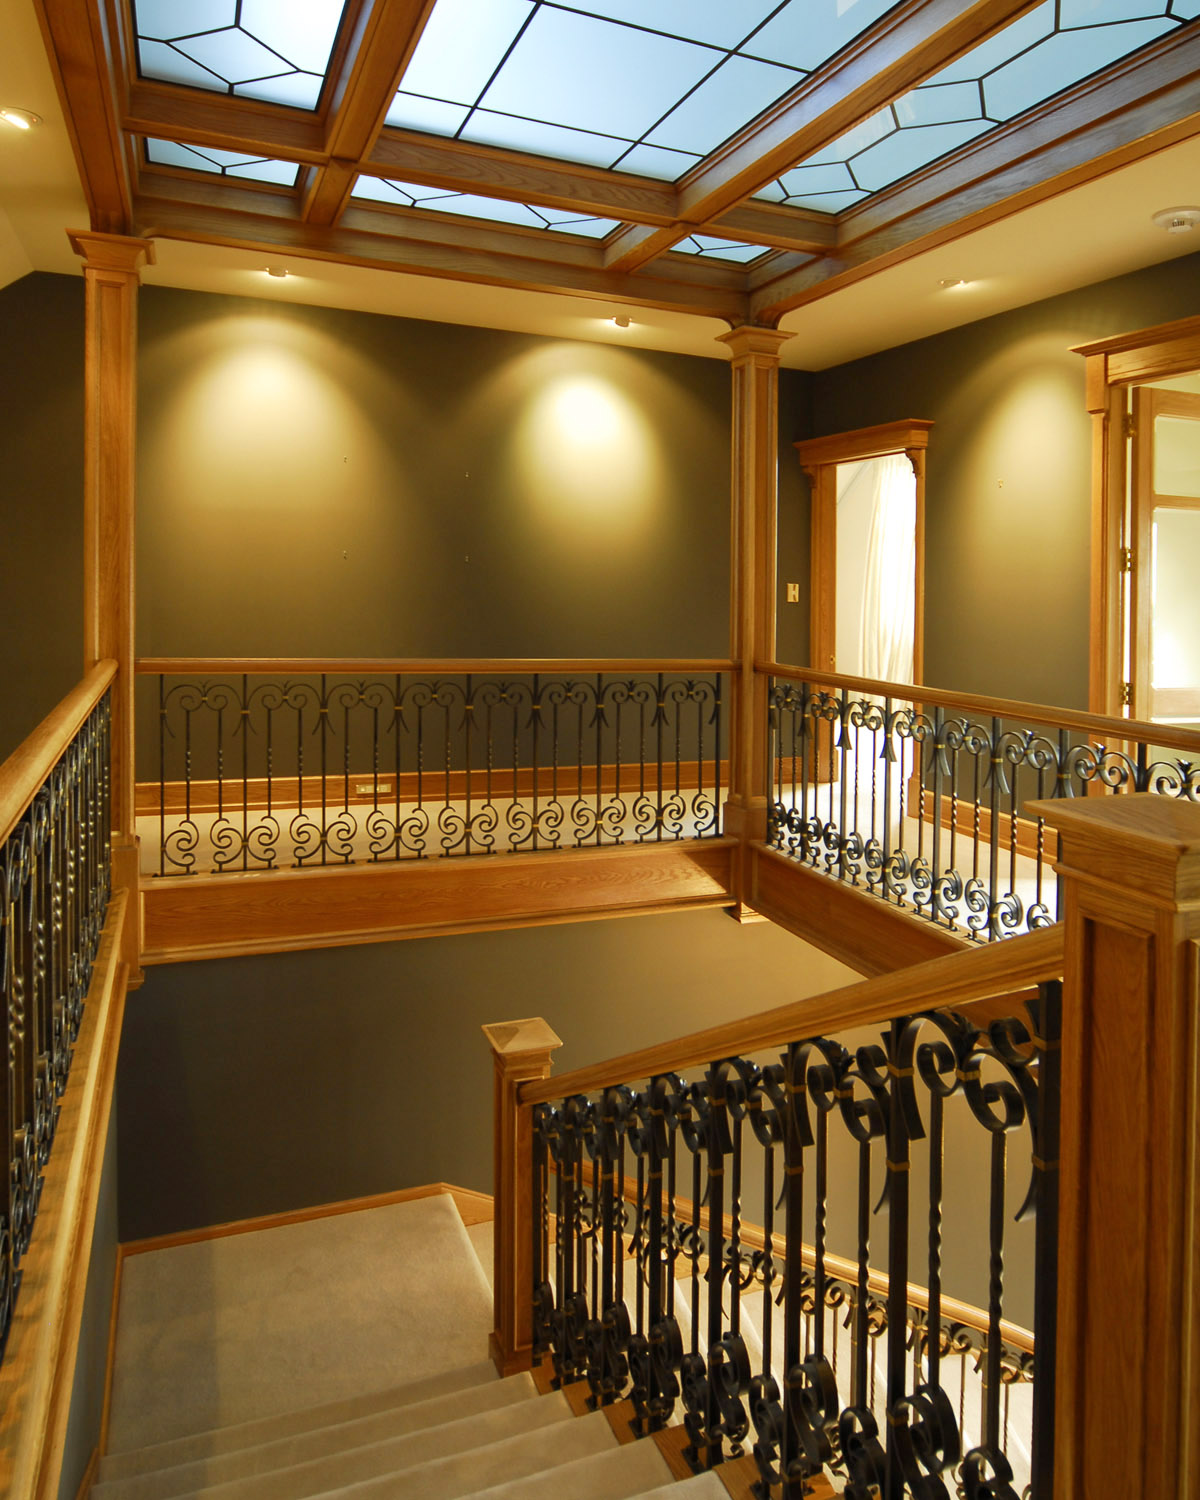 Wrought Iron Balustrade & Skylight